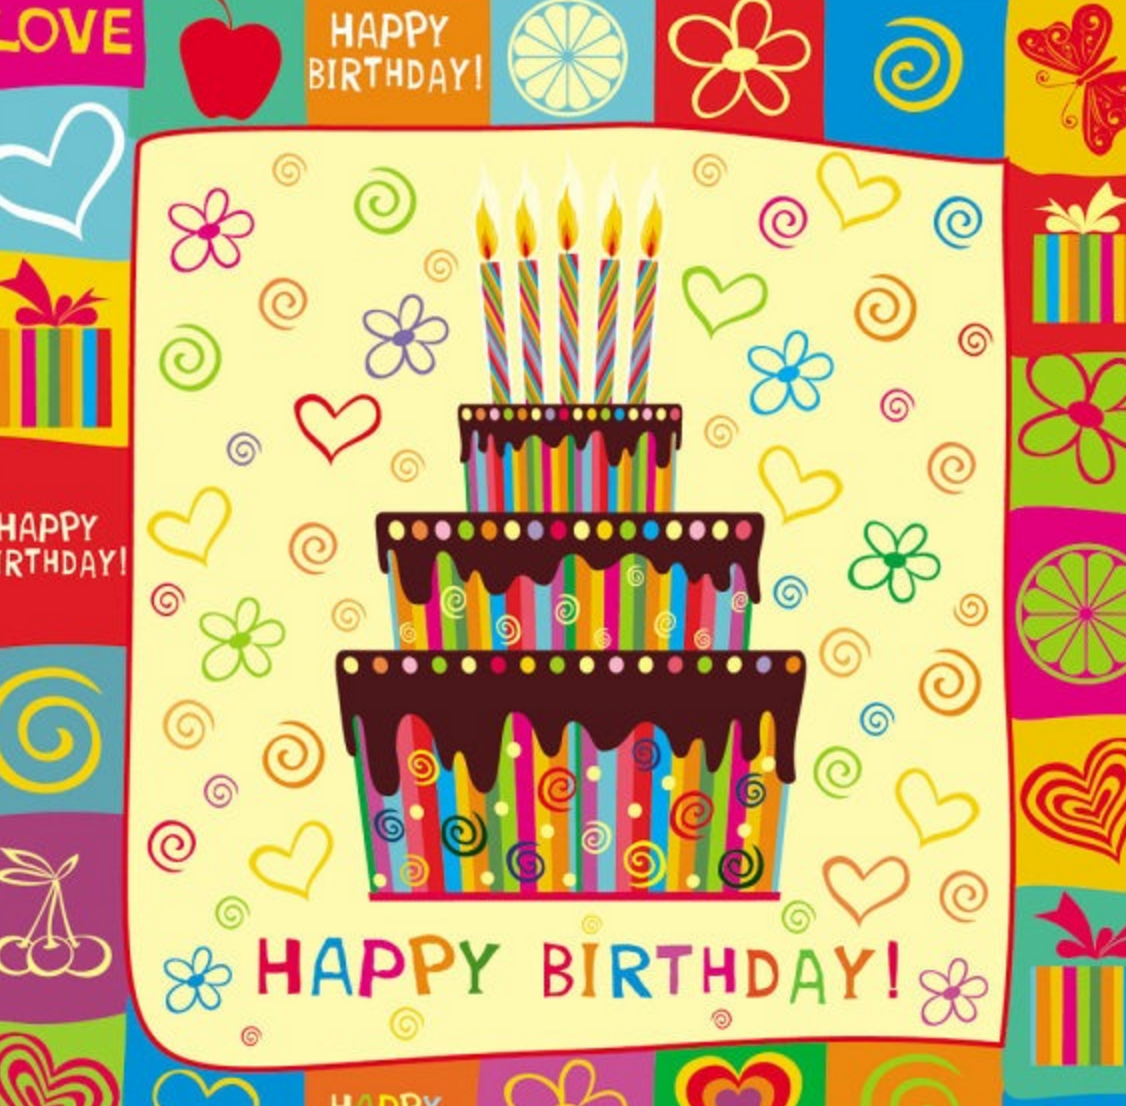 Interesting and wonderful birthday wishes for your boss 2 interesting and wonderful birthday wishes for your boss happy birthday wishes quotes poems toasts kristyandbryce Gallery